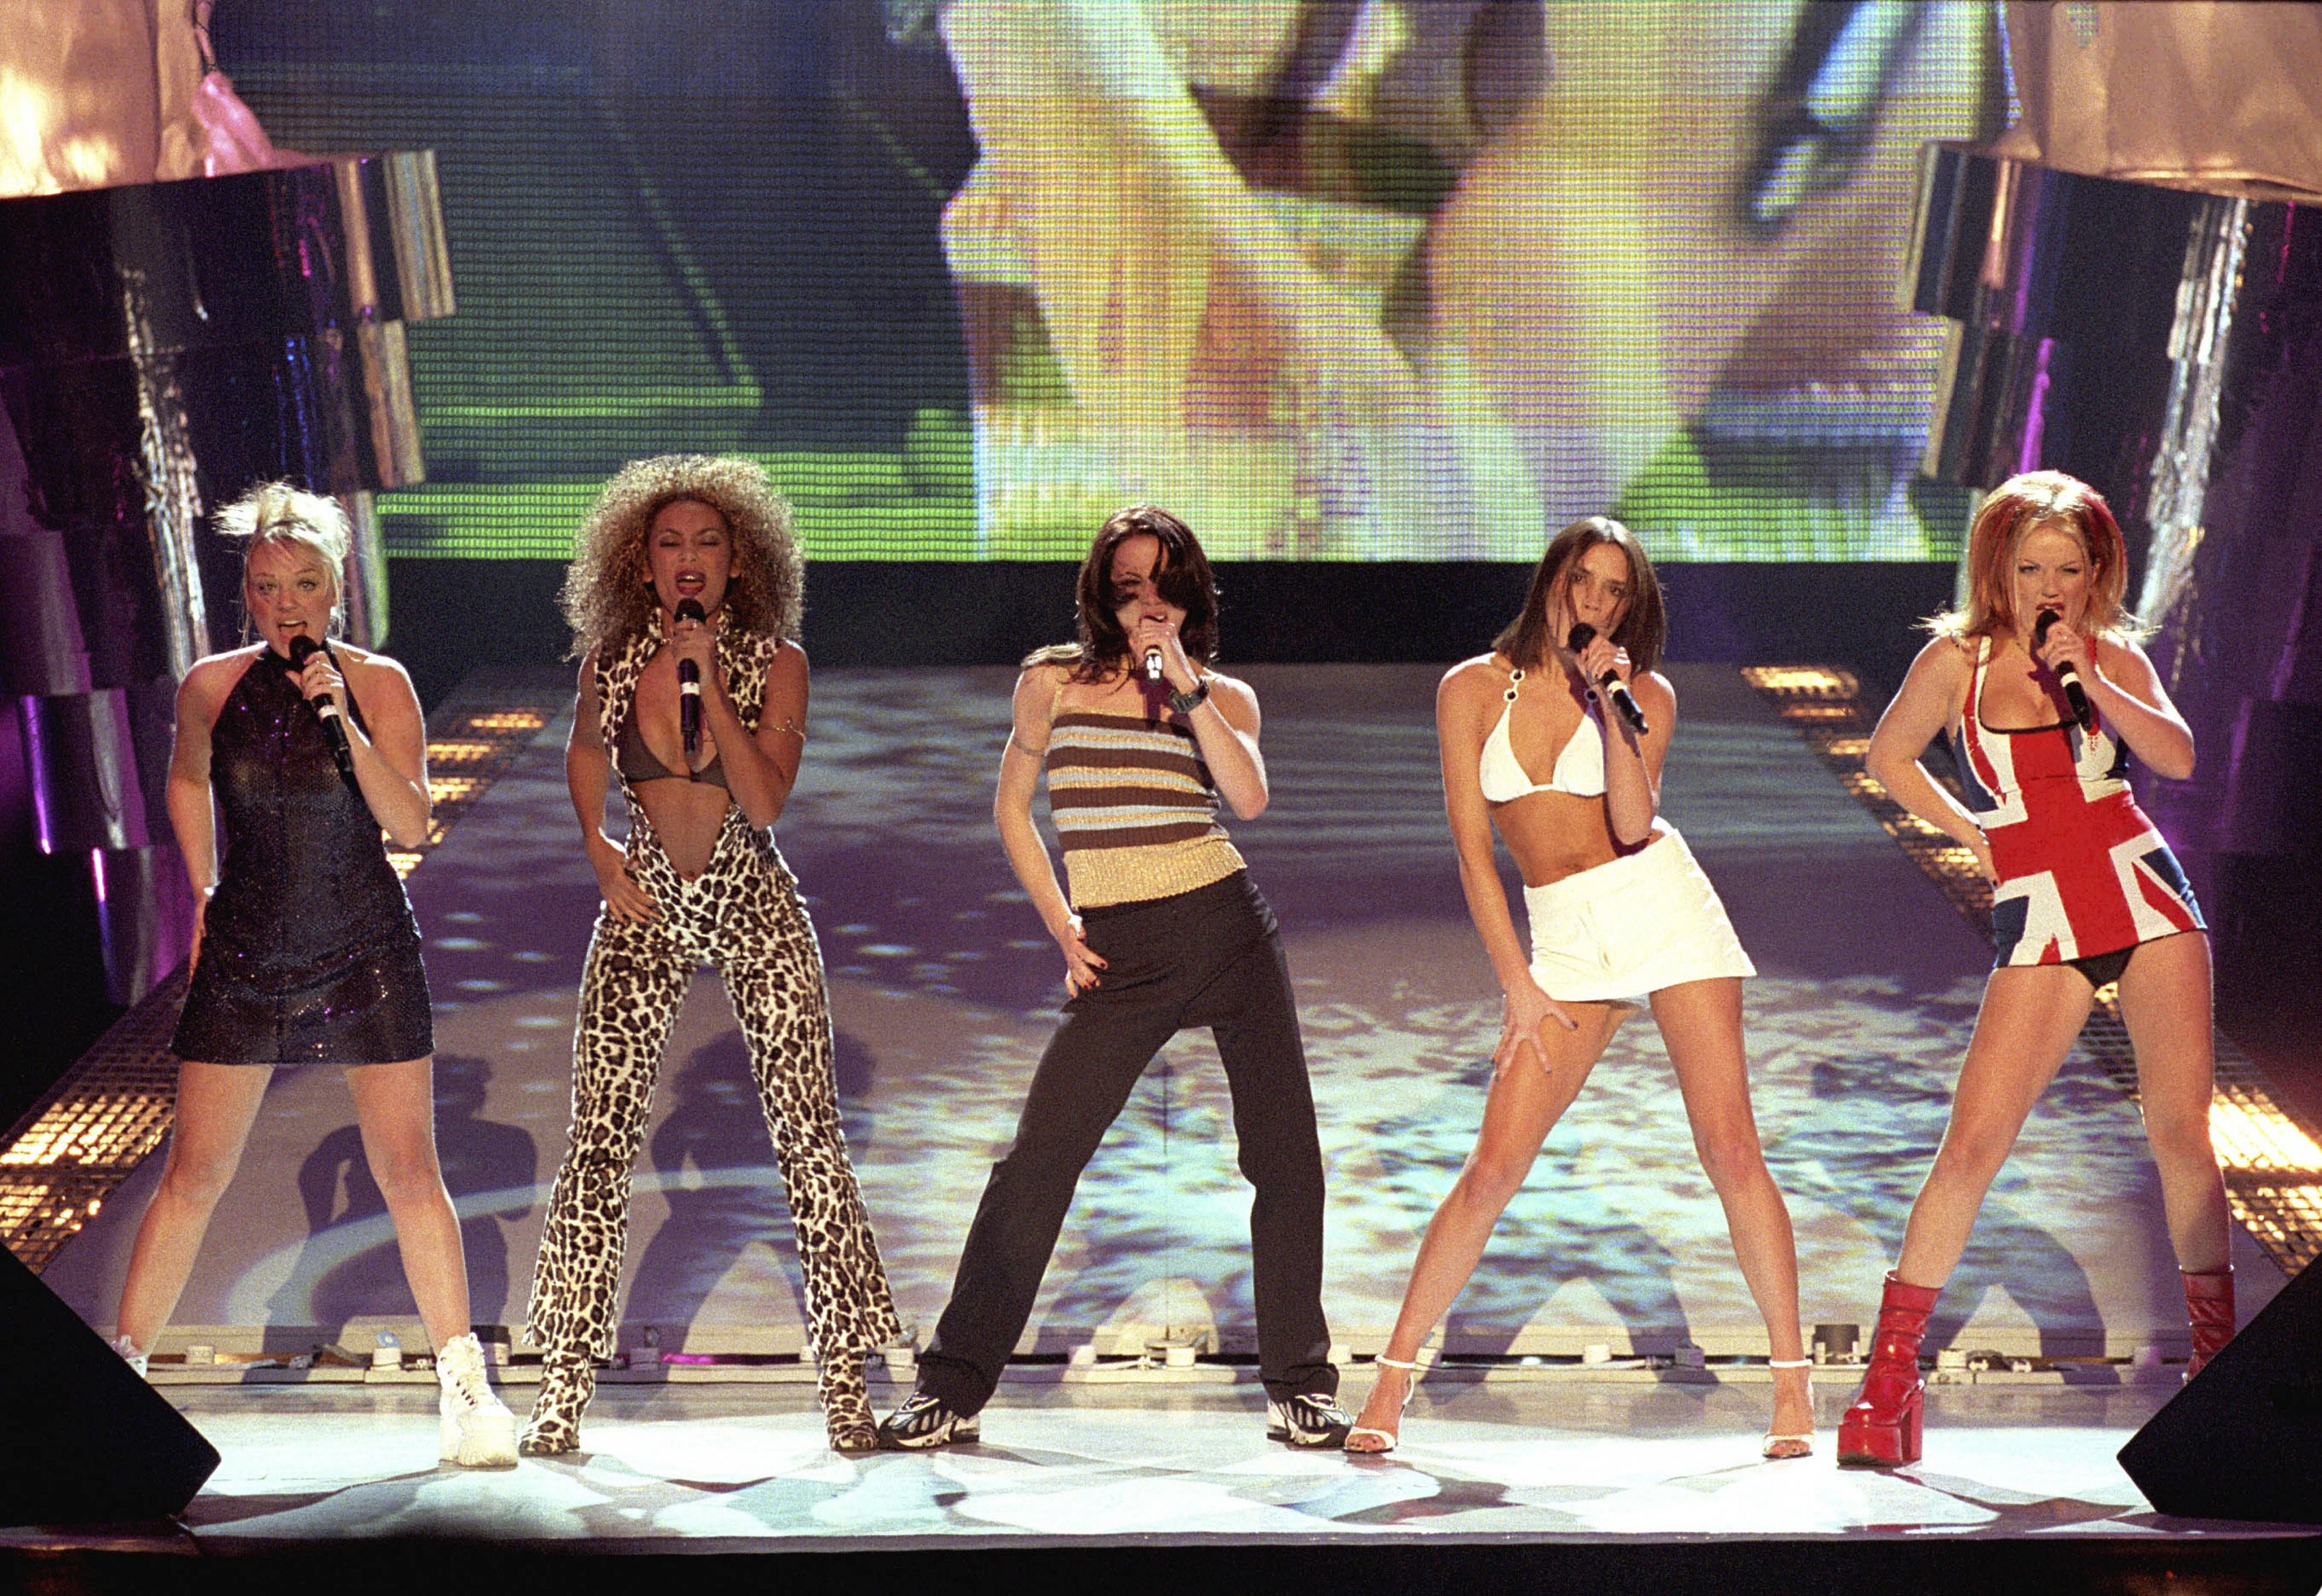 The Spice Girls performing live on stage at the 1997 Brit Awards. From left to right: Emma Bunton, Melanie Brown (Mel B), Melanie Chisholm (Mel C), Victoria Adams (Beckham) and Geri Halliwell, Union Jack dress.